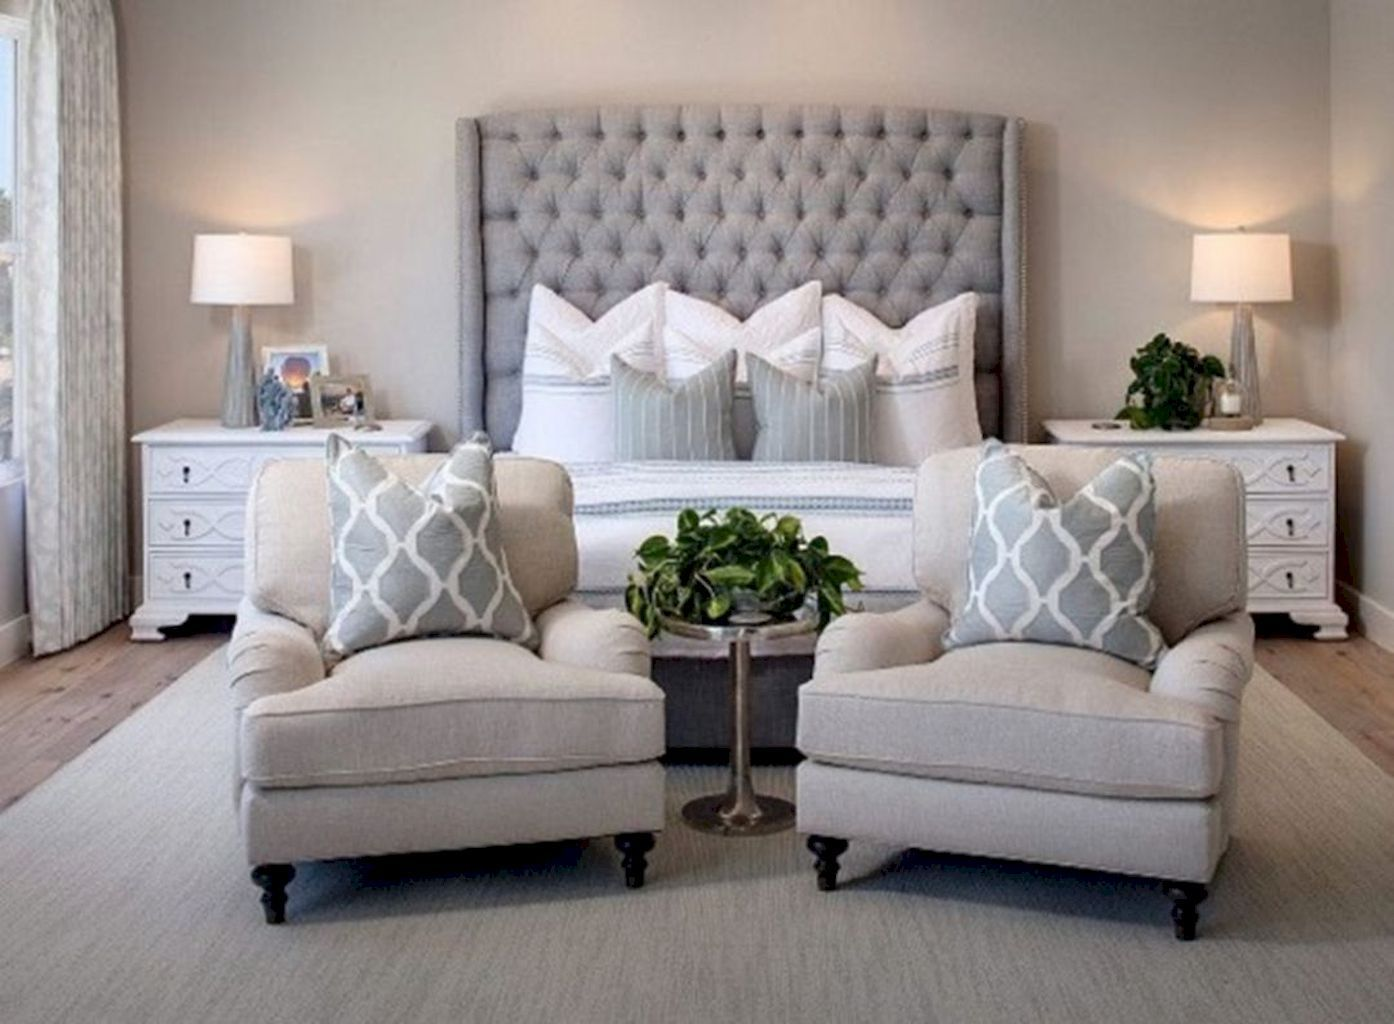 gorgeous small bedroom ideas that boost your freedom decorating